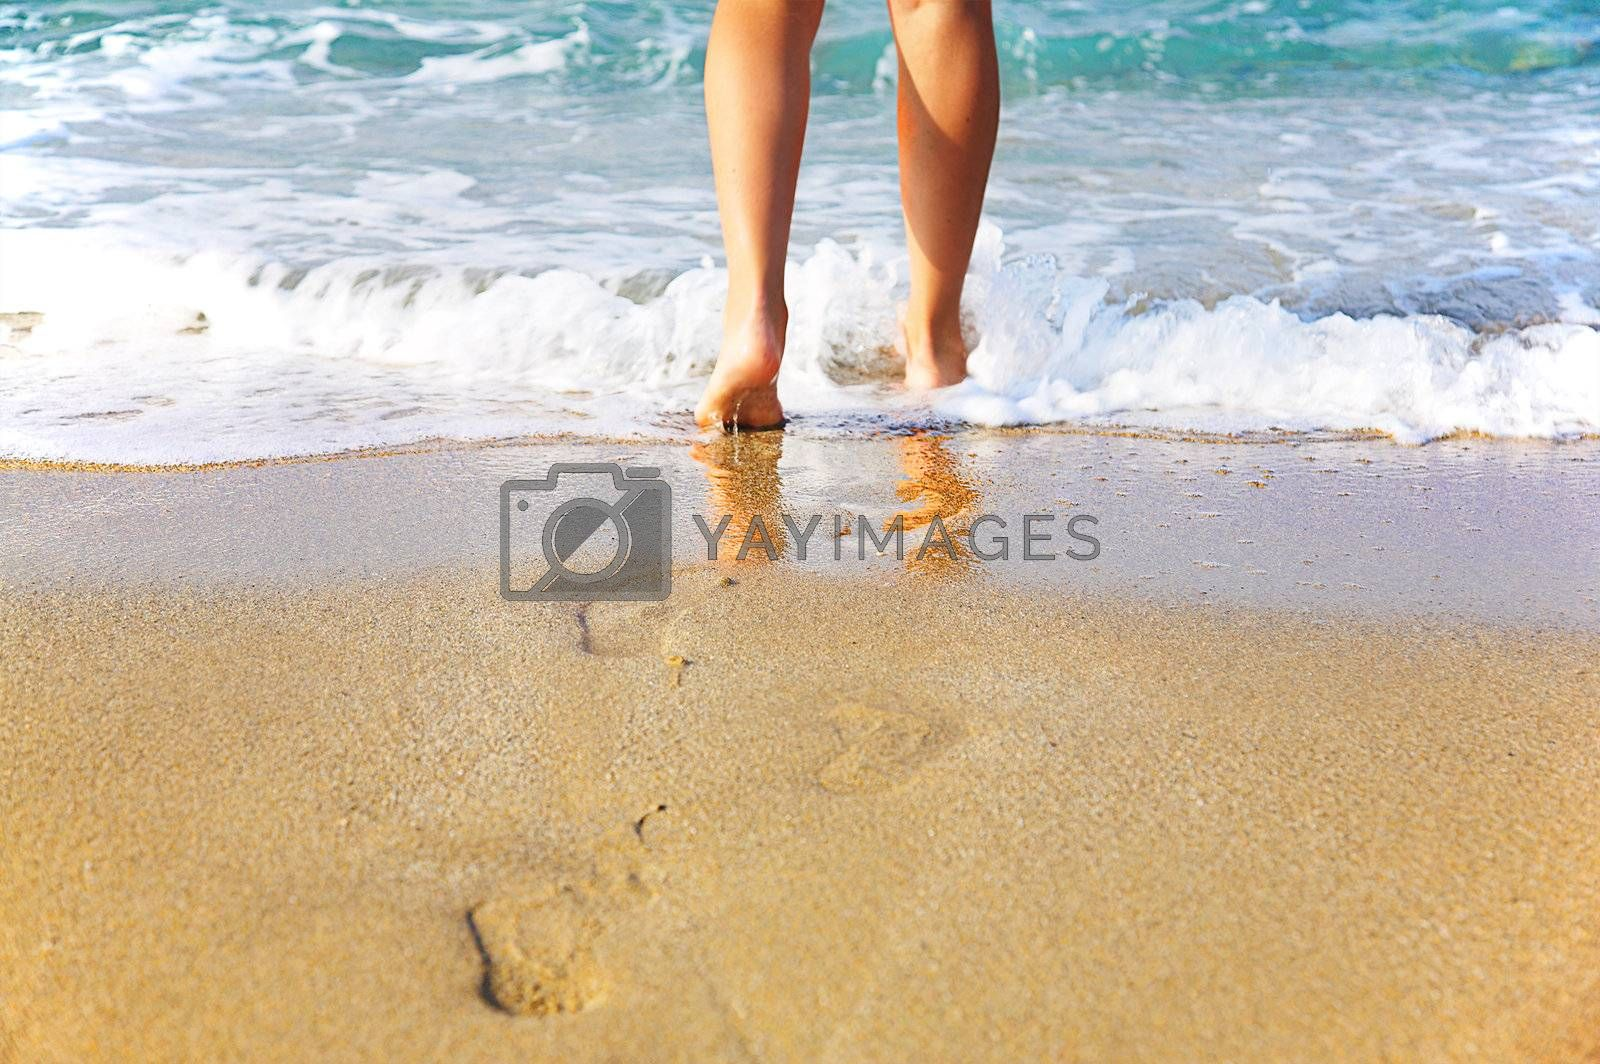 Royalty free image of Woman's legs, going to sea by DeusNoxious